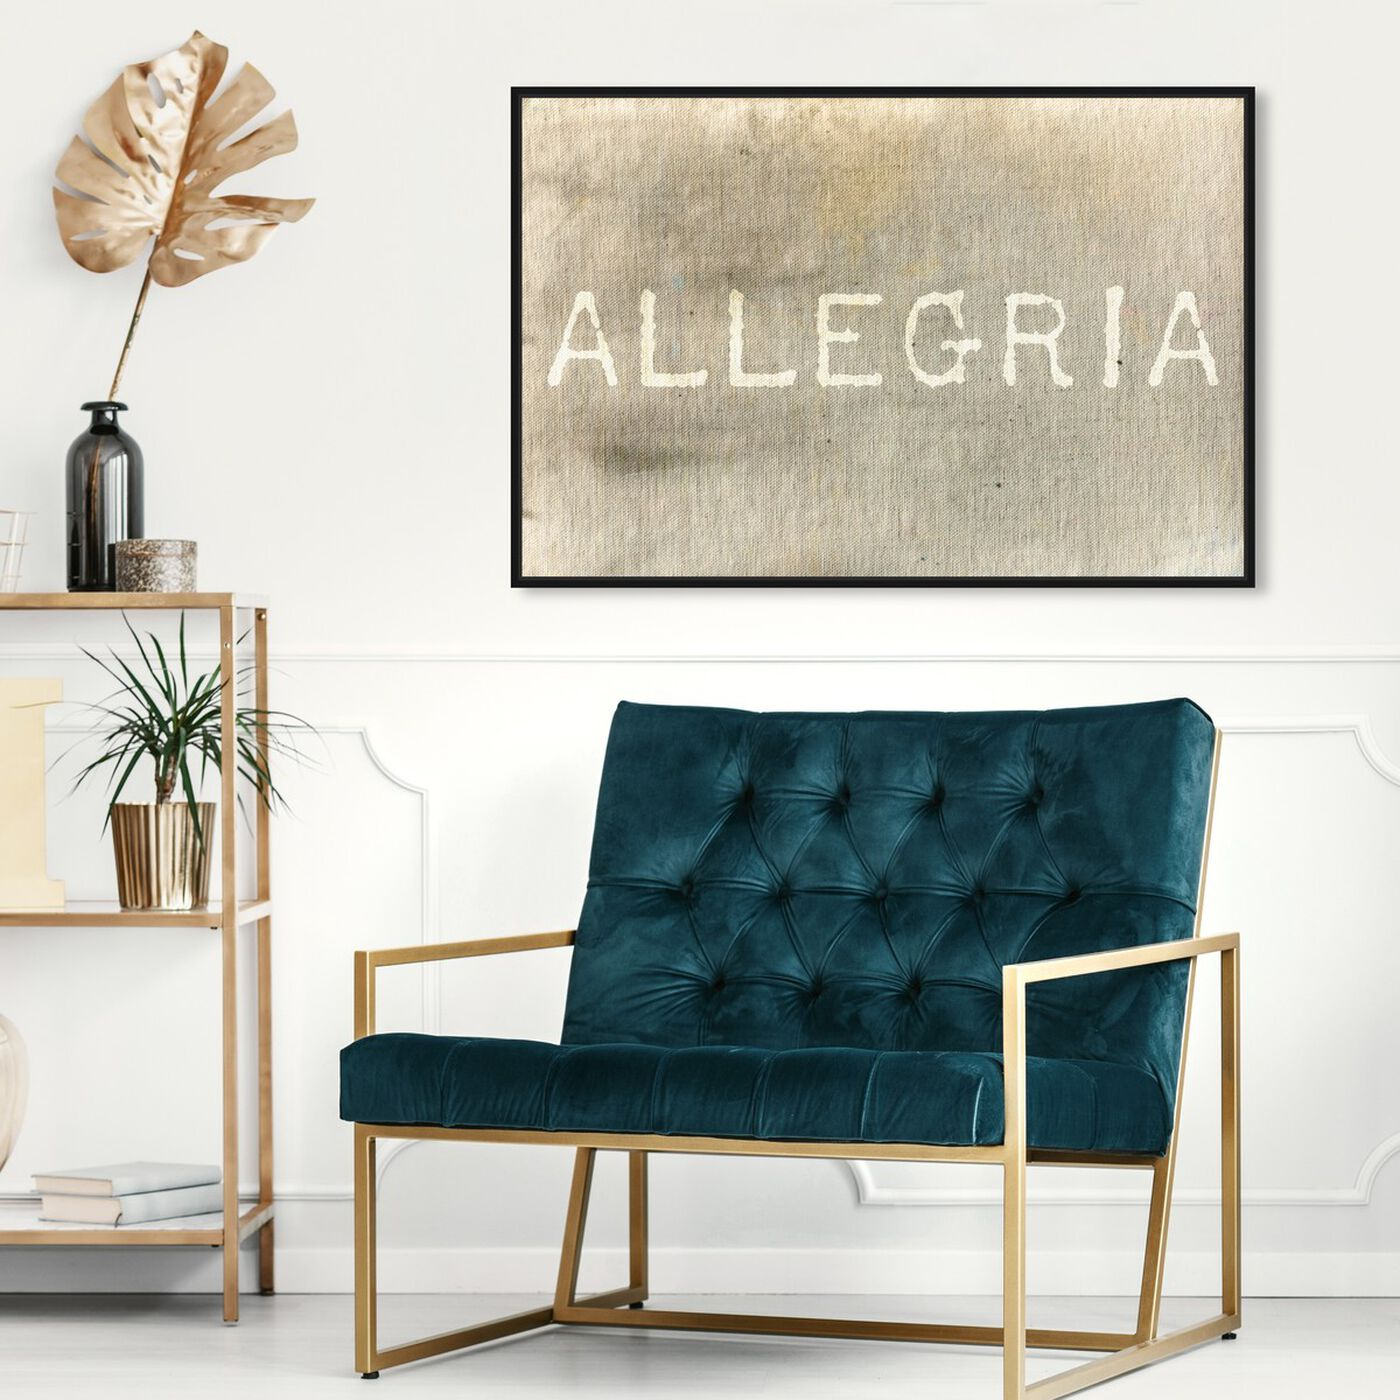 Hanging view of Allegria featuring typography and quotes and inspirational quotes and sayings art.